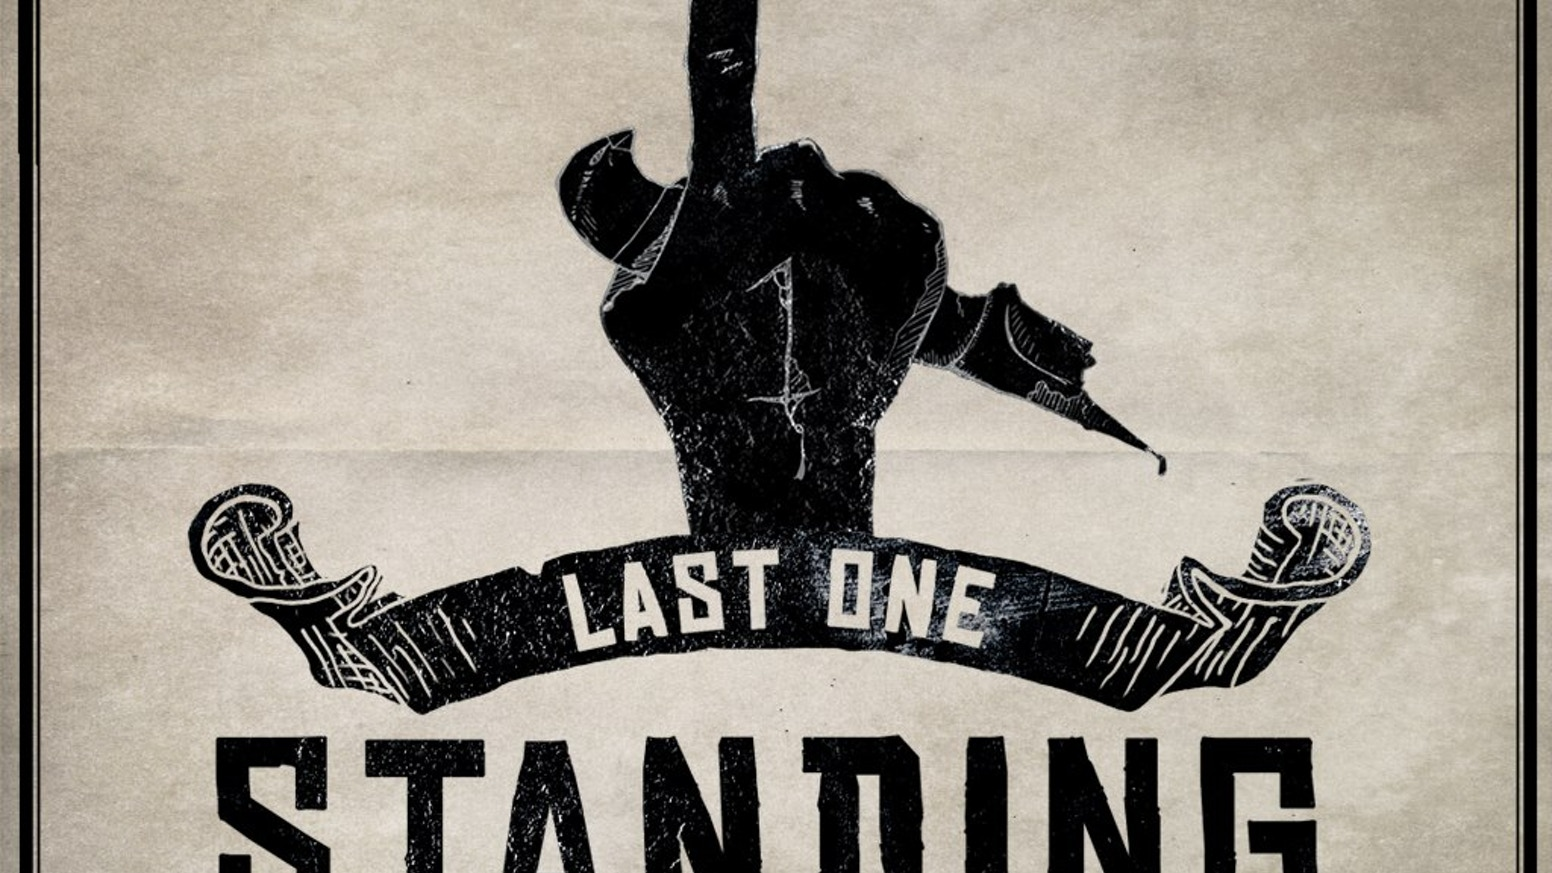 Last One Standing combines the flexibility and drama of tabletop RPGs with the quick and easy action of board games.